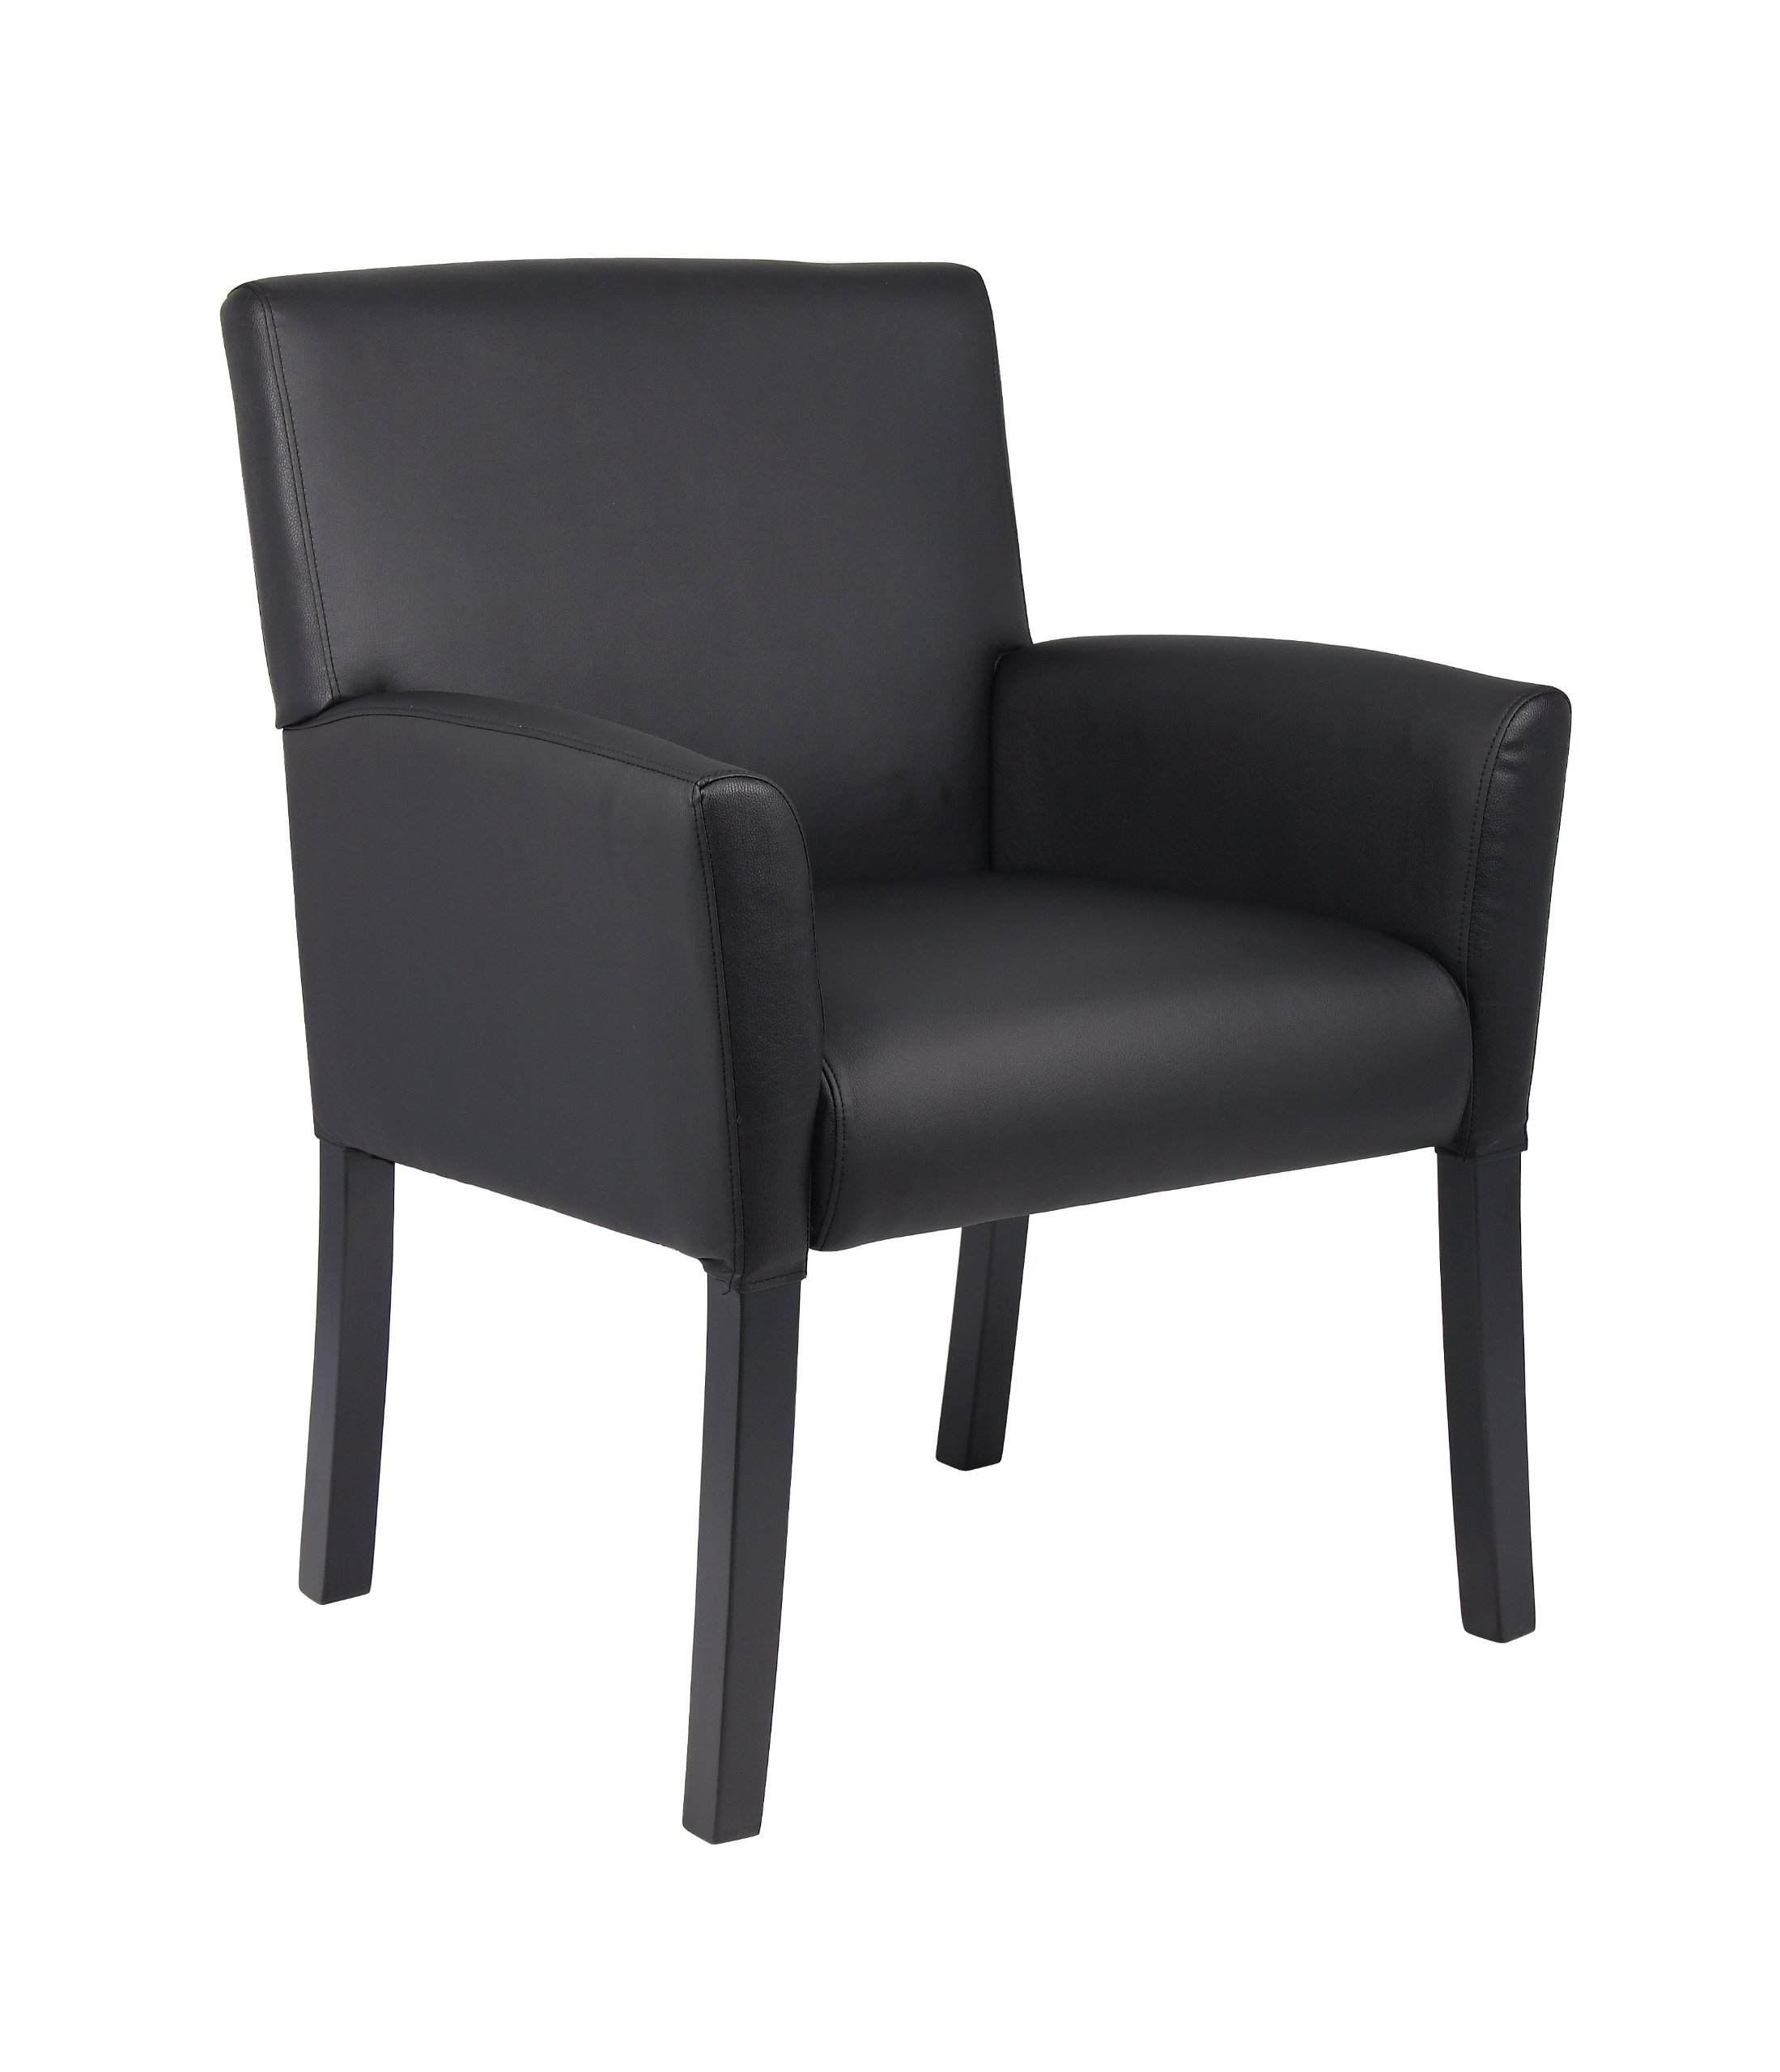 Boss Office Products B639-BK Executive Box Arm Chair with Mahogany Finish in Black by Boss Office Products (Image #1)